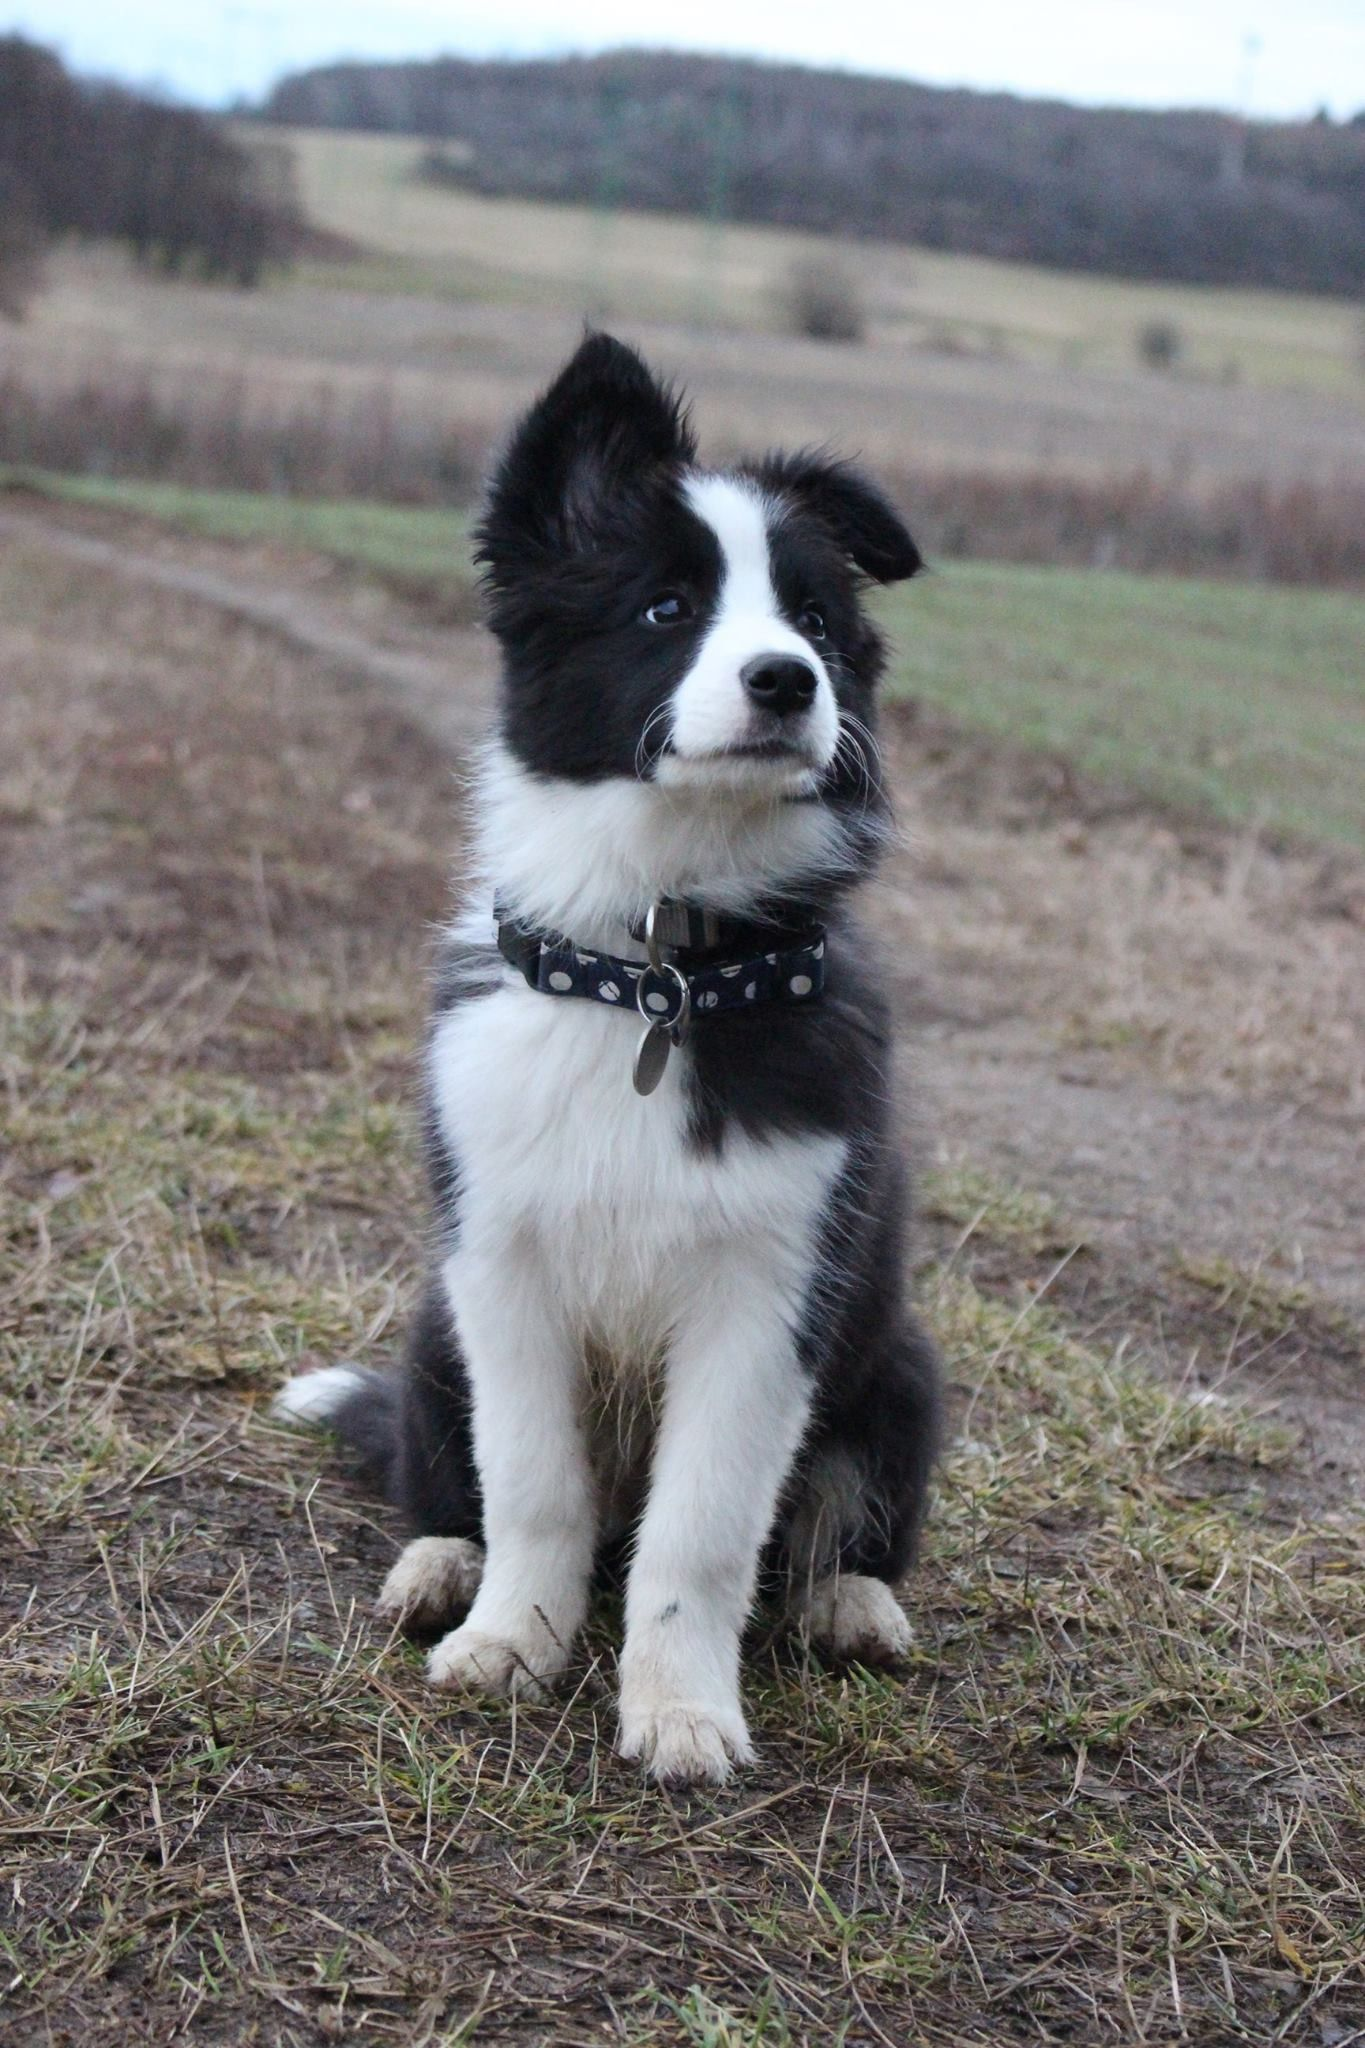 Awe A Sweet Little Border Collie Pupper Collie Dog Cute Dogs Breeds Collie Puppies